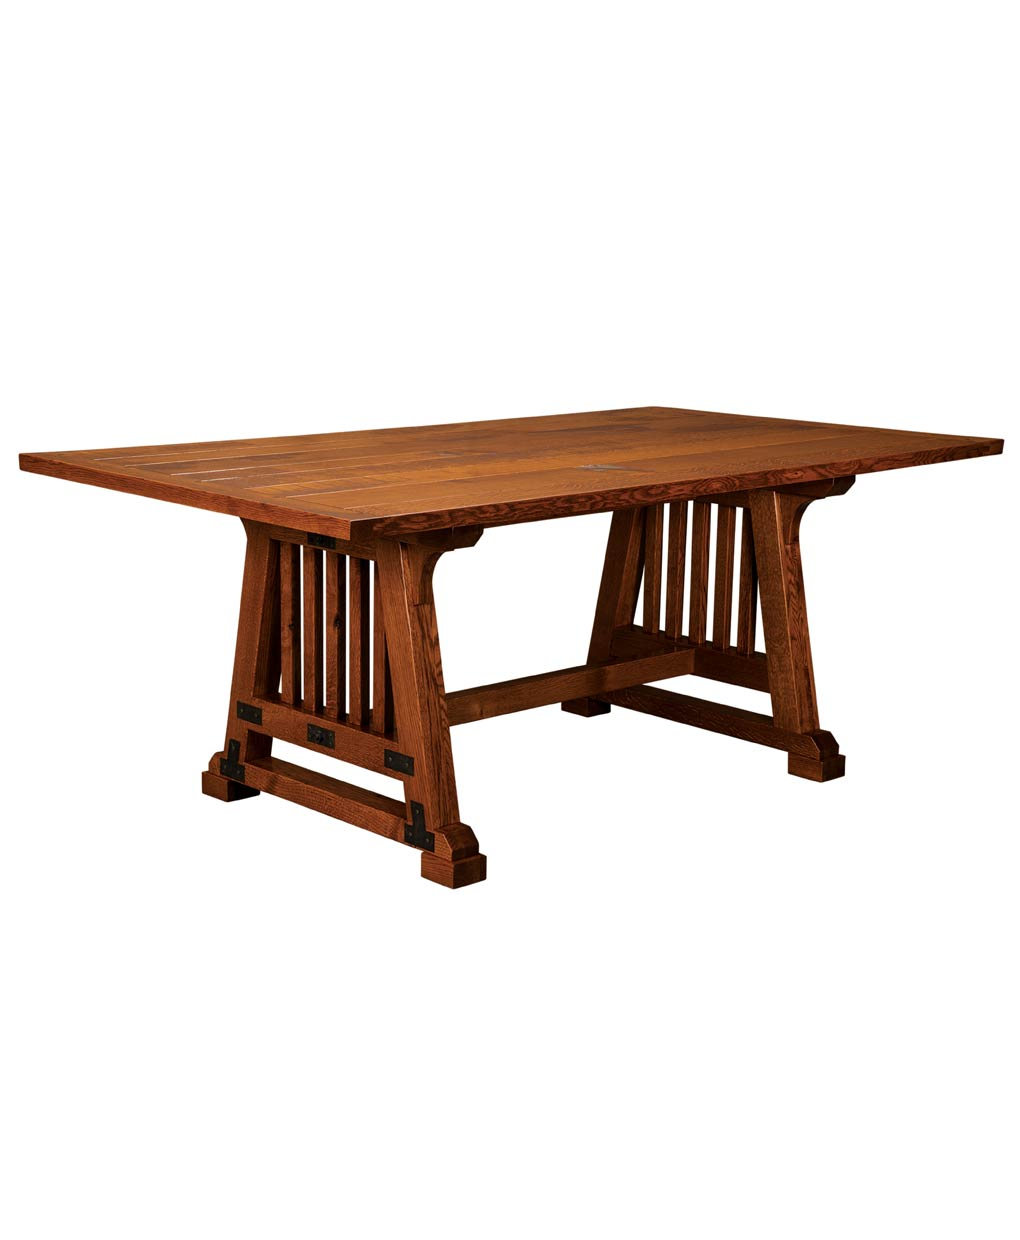 Allegheny Trestle Table - Amish Direct Furniture